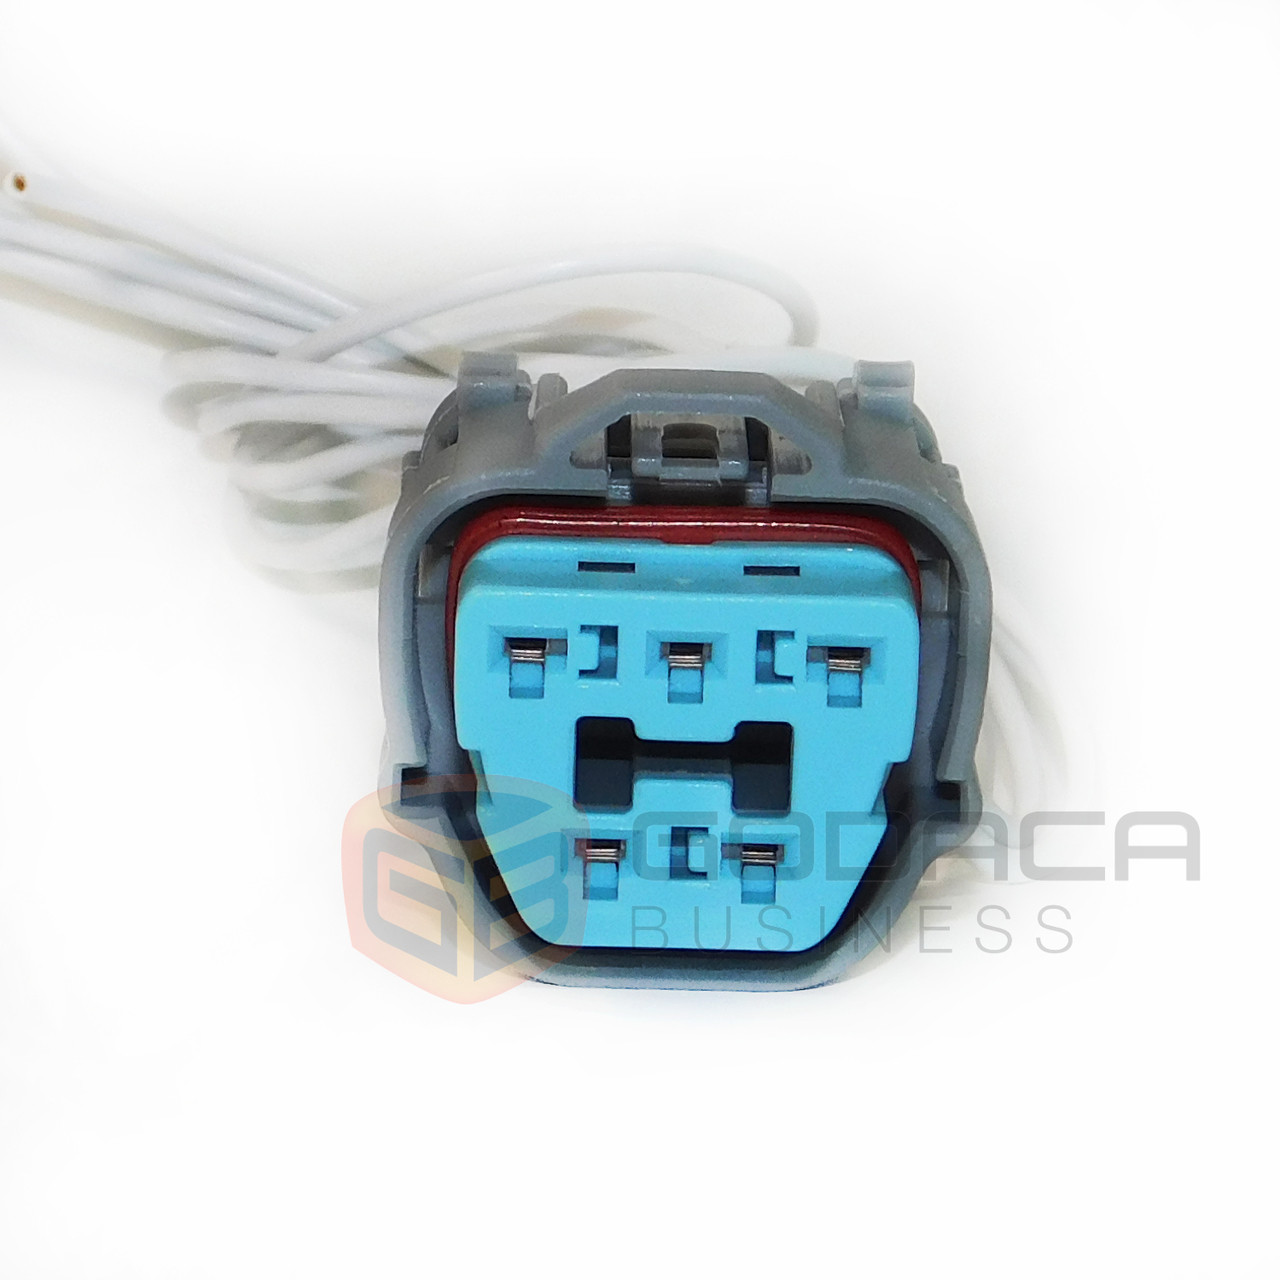 Connector Fuel Pump Harness Pigtail For Honda Civic Accord 5way with wire  Godaca, LLC